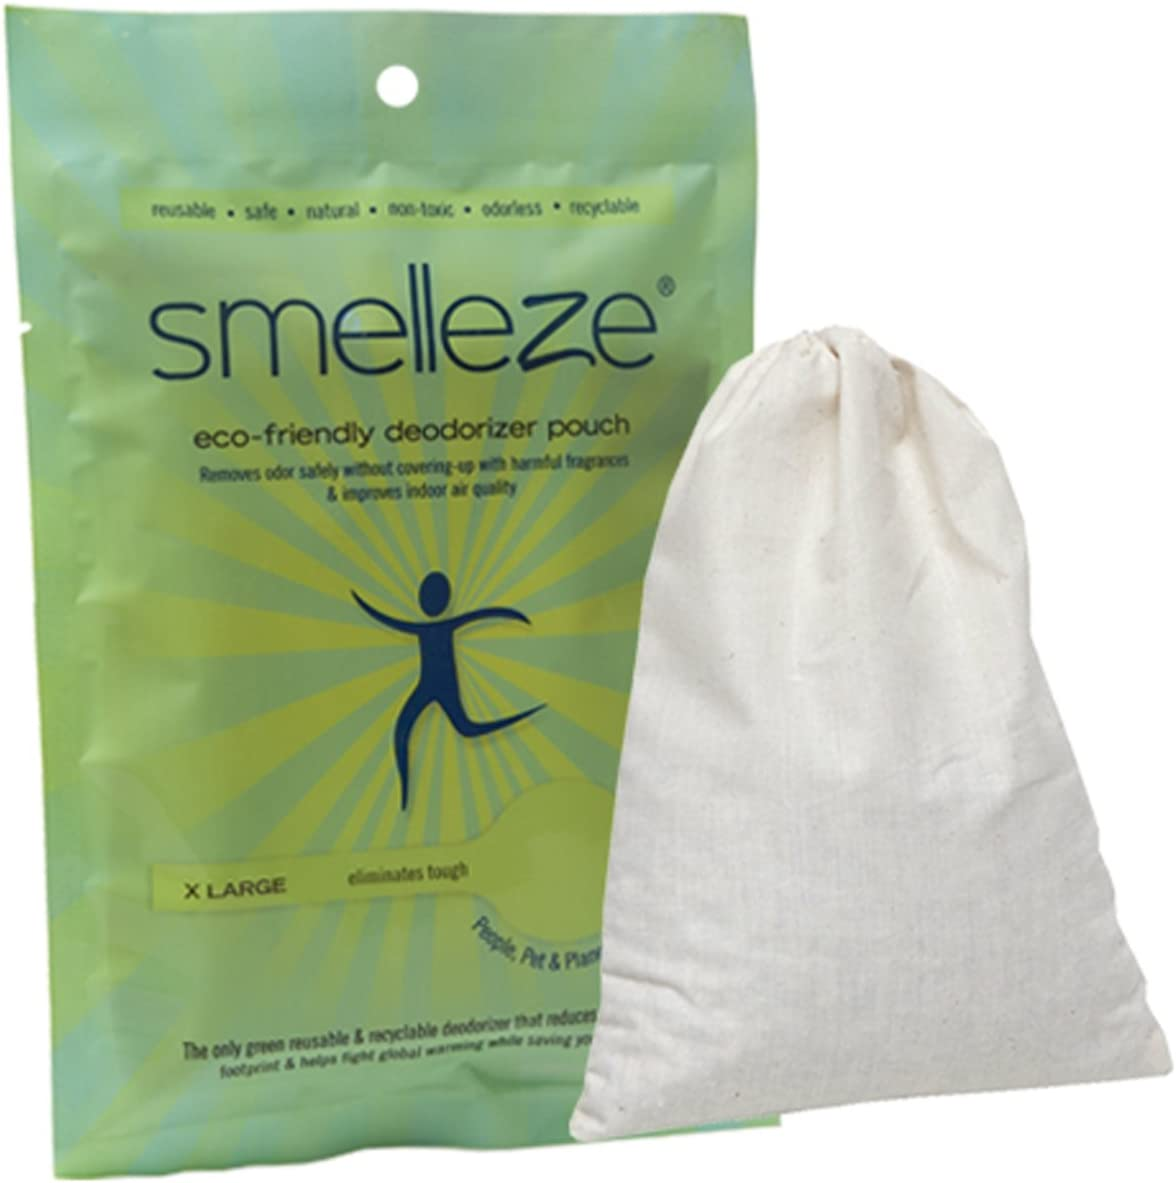 SMELLEZE Reusable Pet Smell Removal Deodorizer Pouch: Get Dog & Cat Stink Out Without Scents in 150 Sq. Ft.